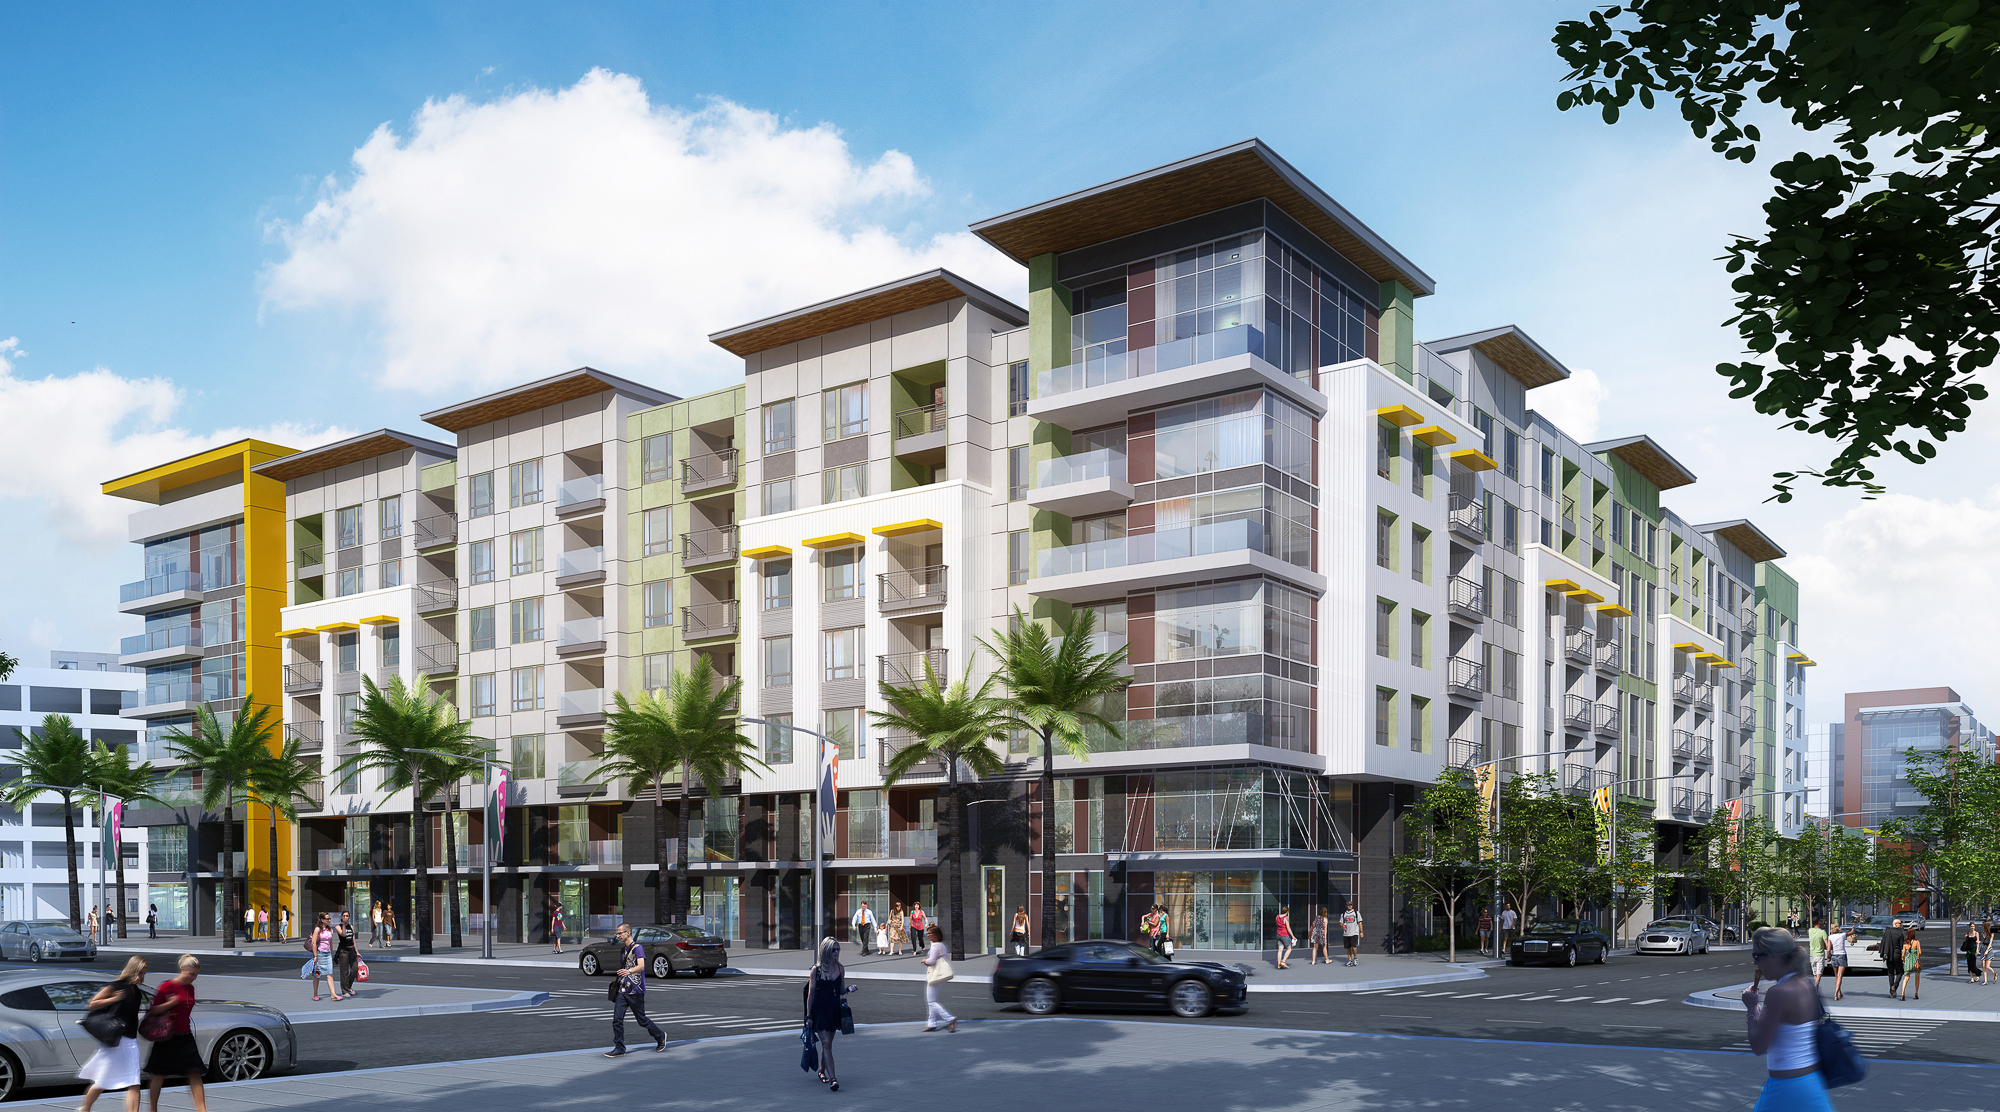 A rendering of the Ariva 4 project recently awarded to general contractor, Wermers Multi-Family Corporation.